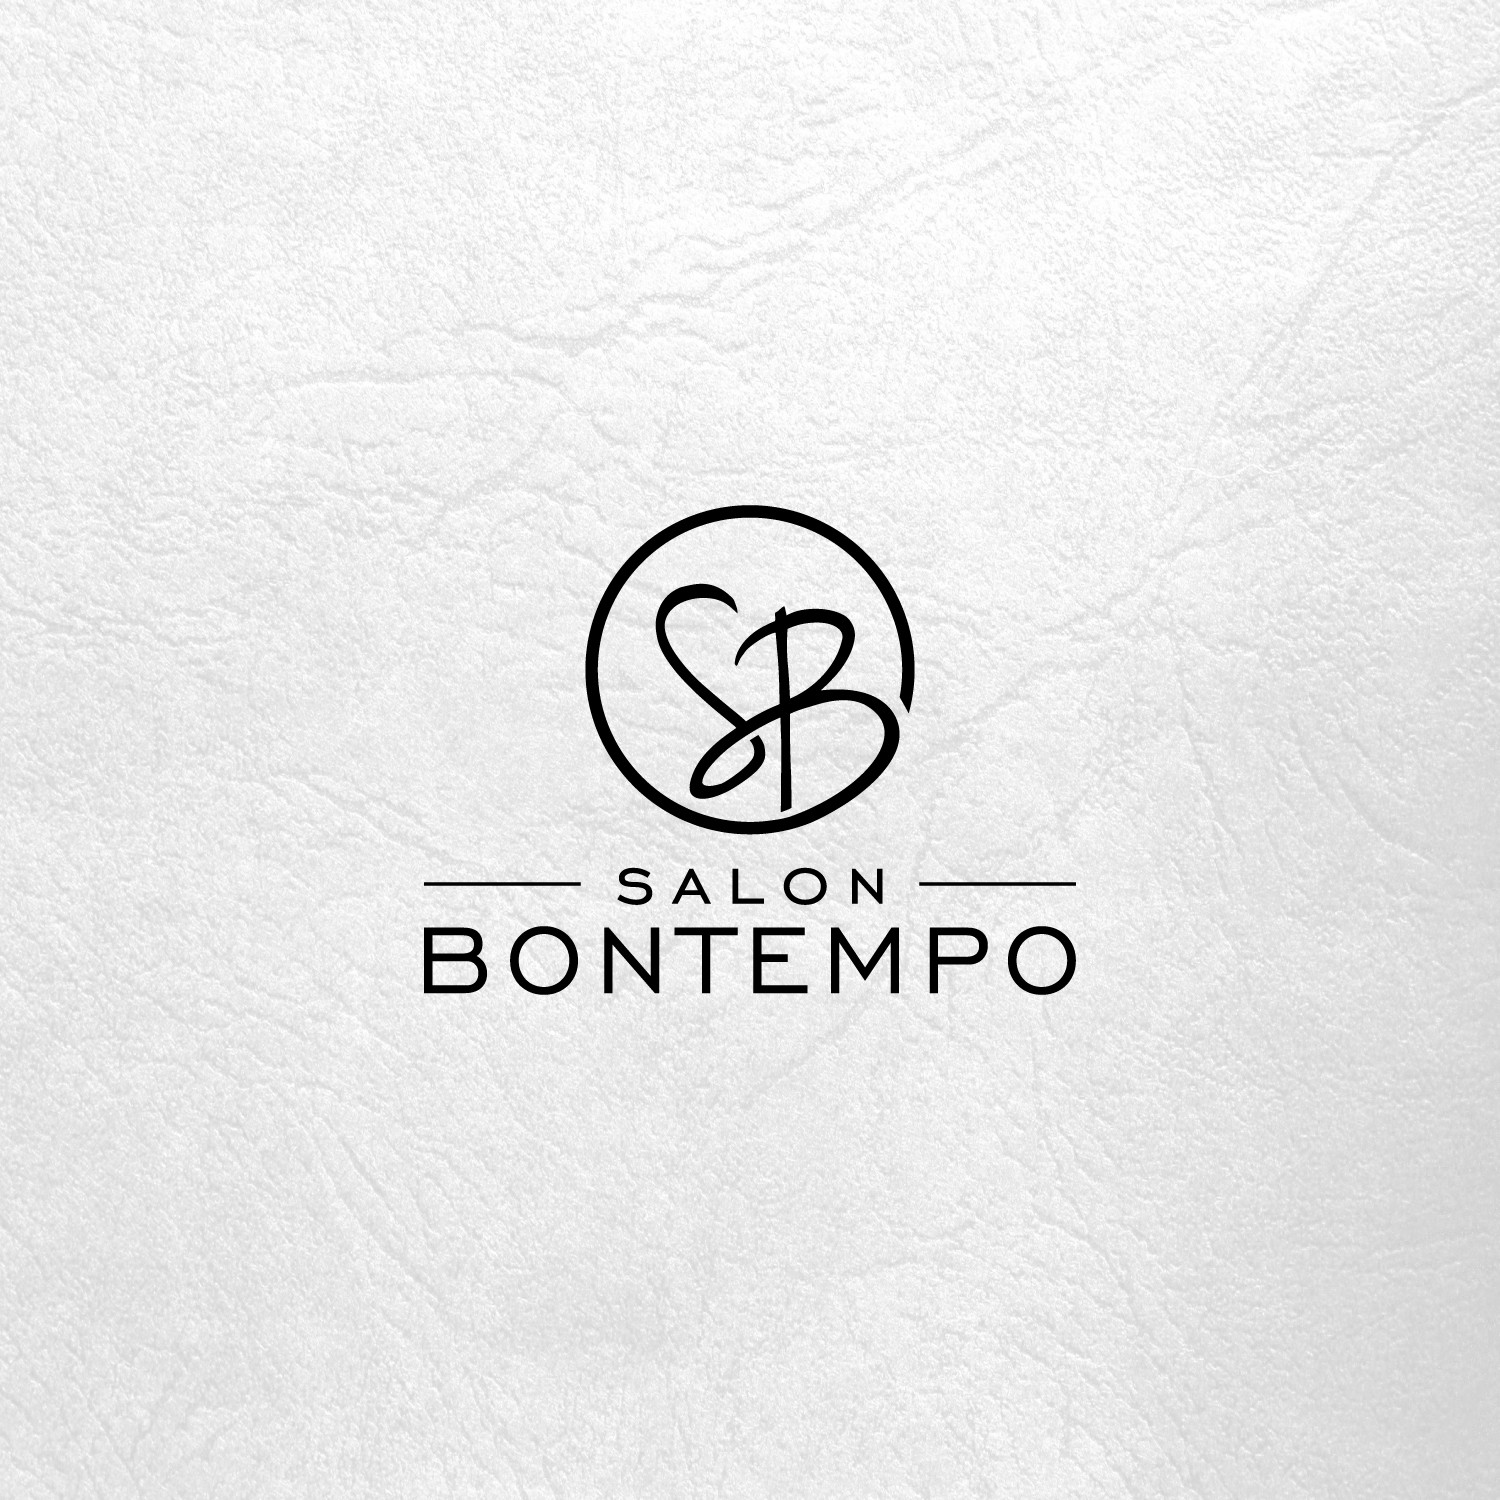 Looking for a clean elegant logo for an upscale hair salon